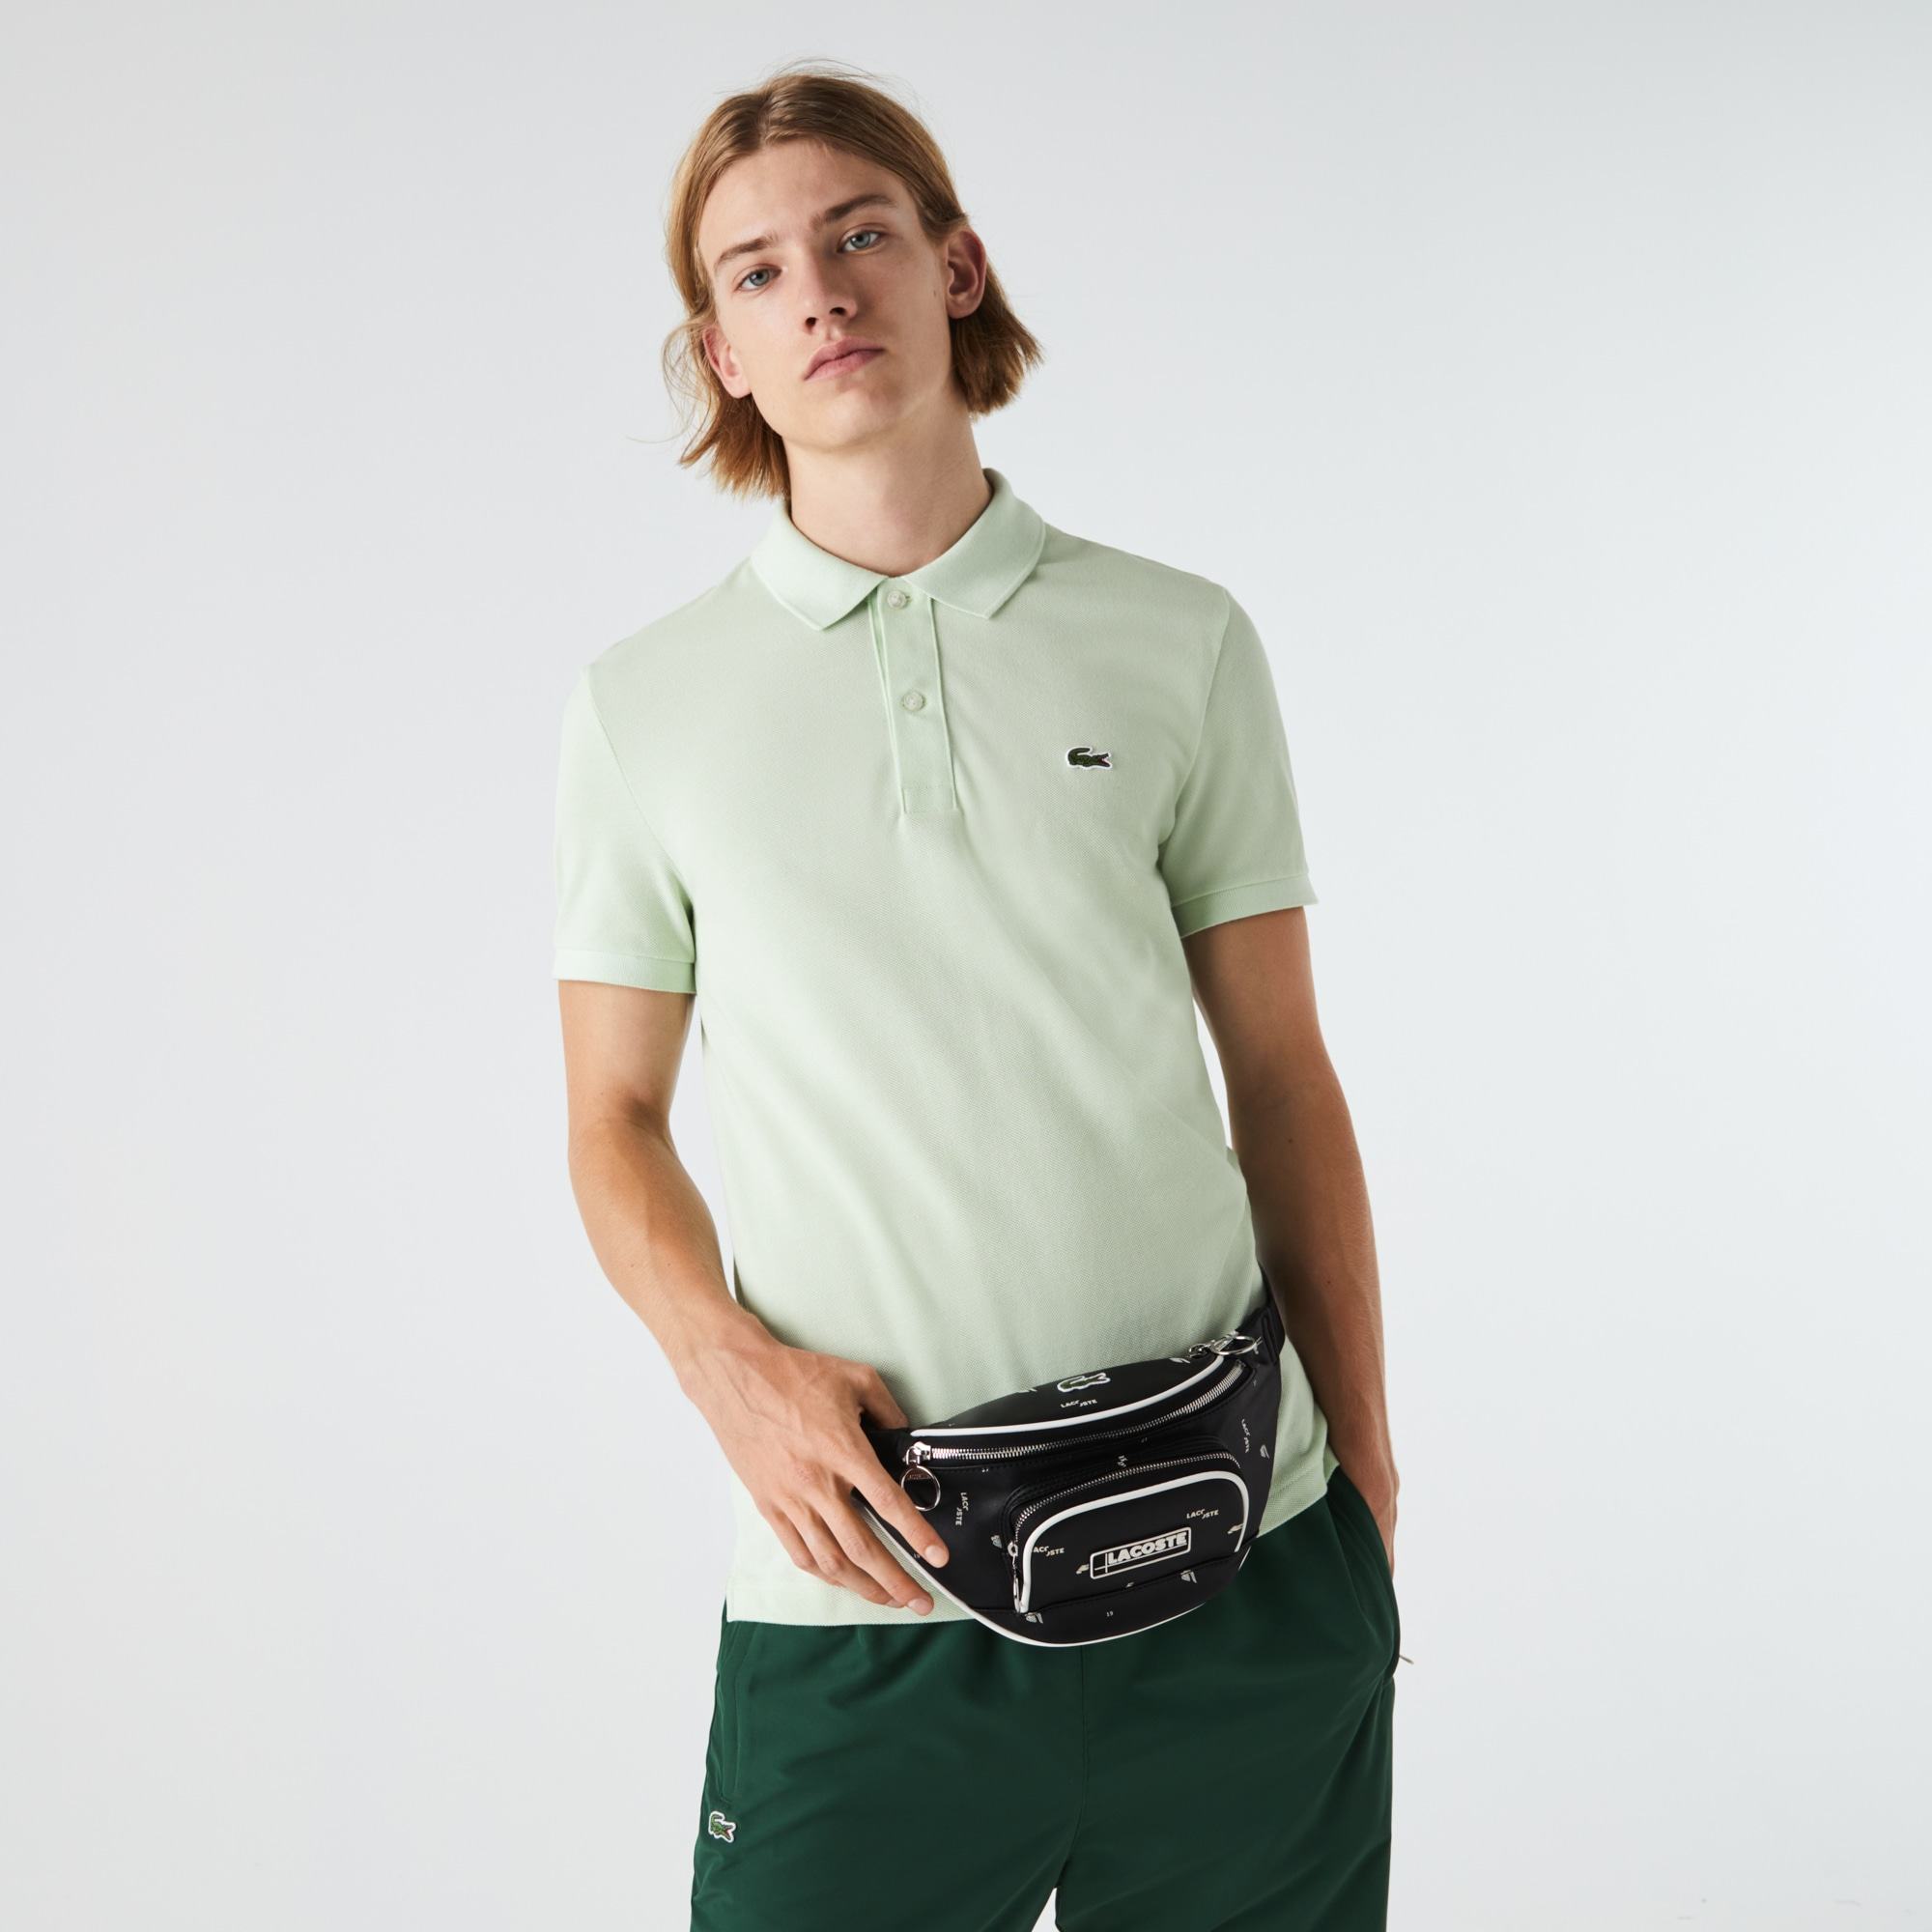 라코스테 '랩 미 업 컬렉션' LCST 코팅 캔버스 벨트백 Lacoste Mens LCST Coated Canvas Print Zippered Fanny Pack